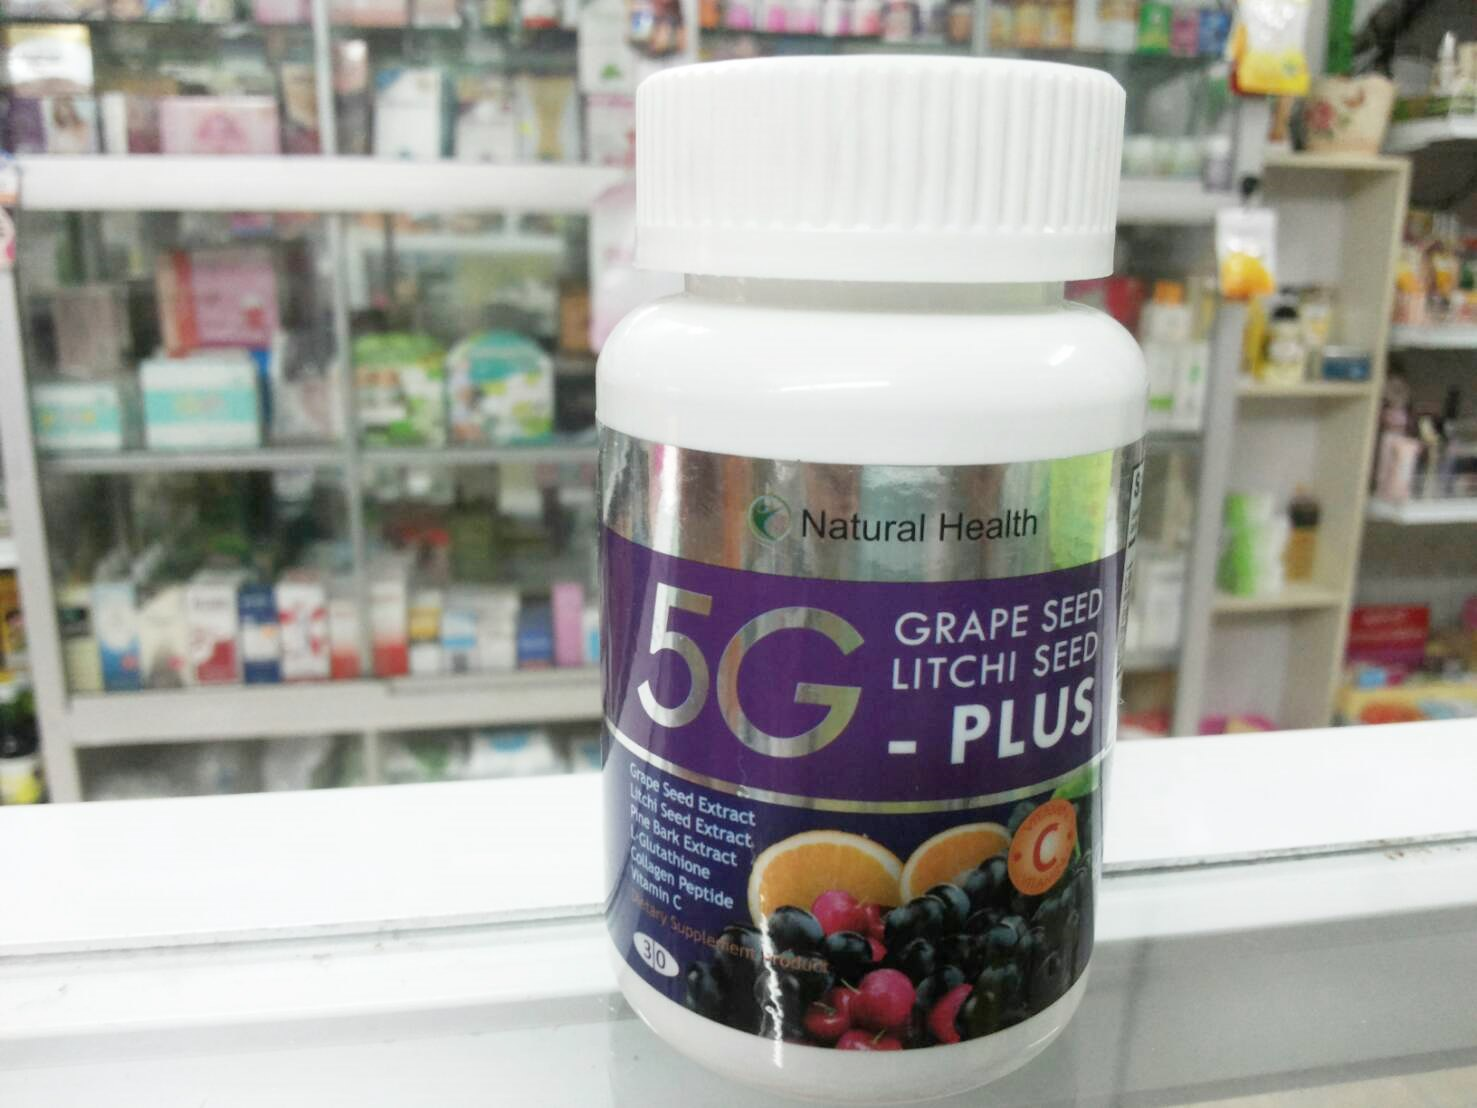 5G Plus Grape seed litchi seed ราคาส่ง